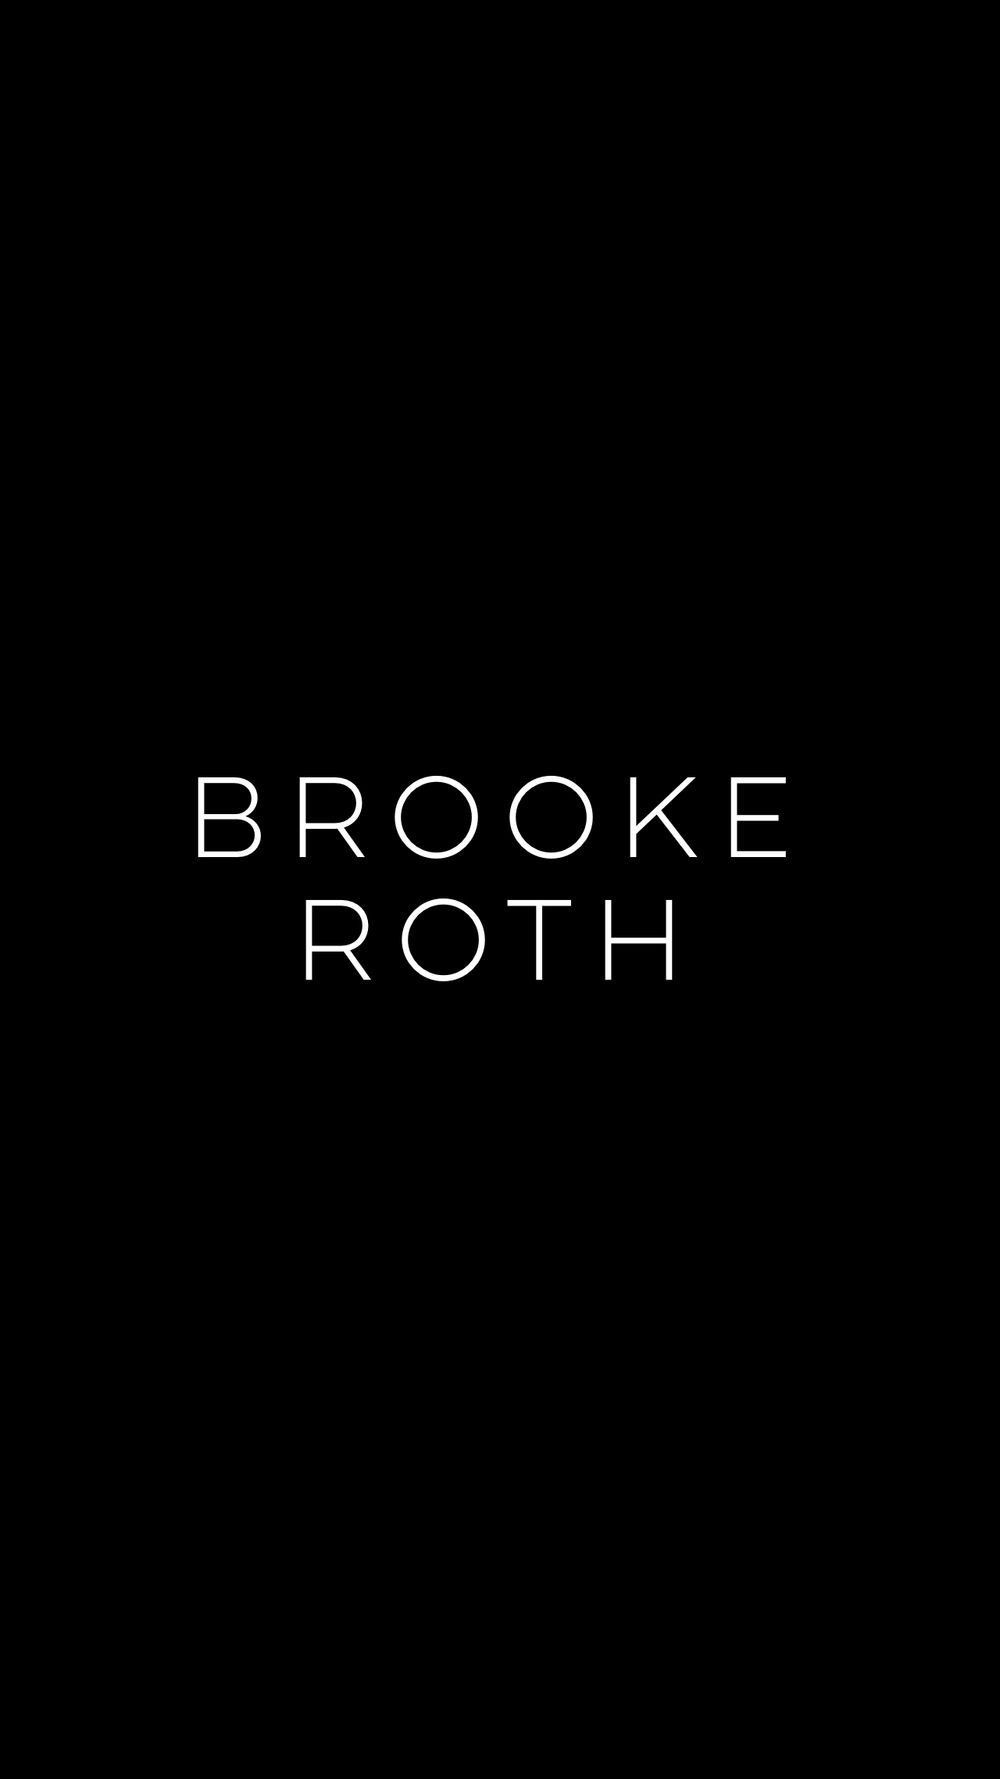 BROOKE ROTH (1).jpg